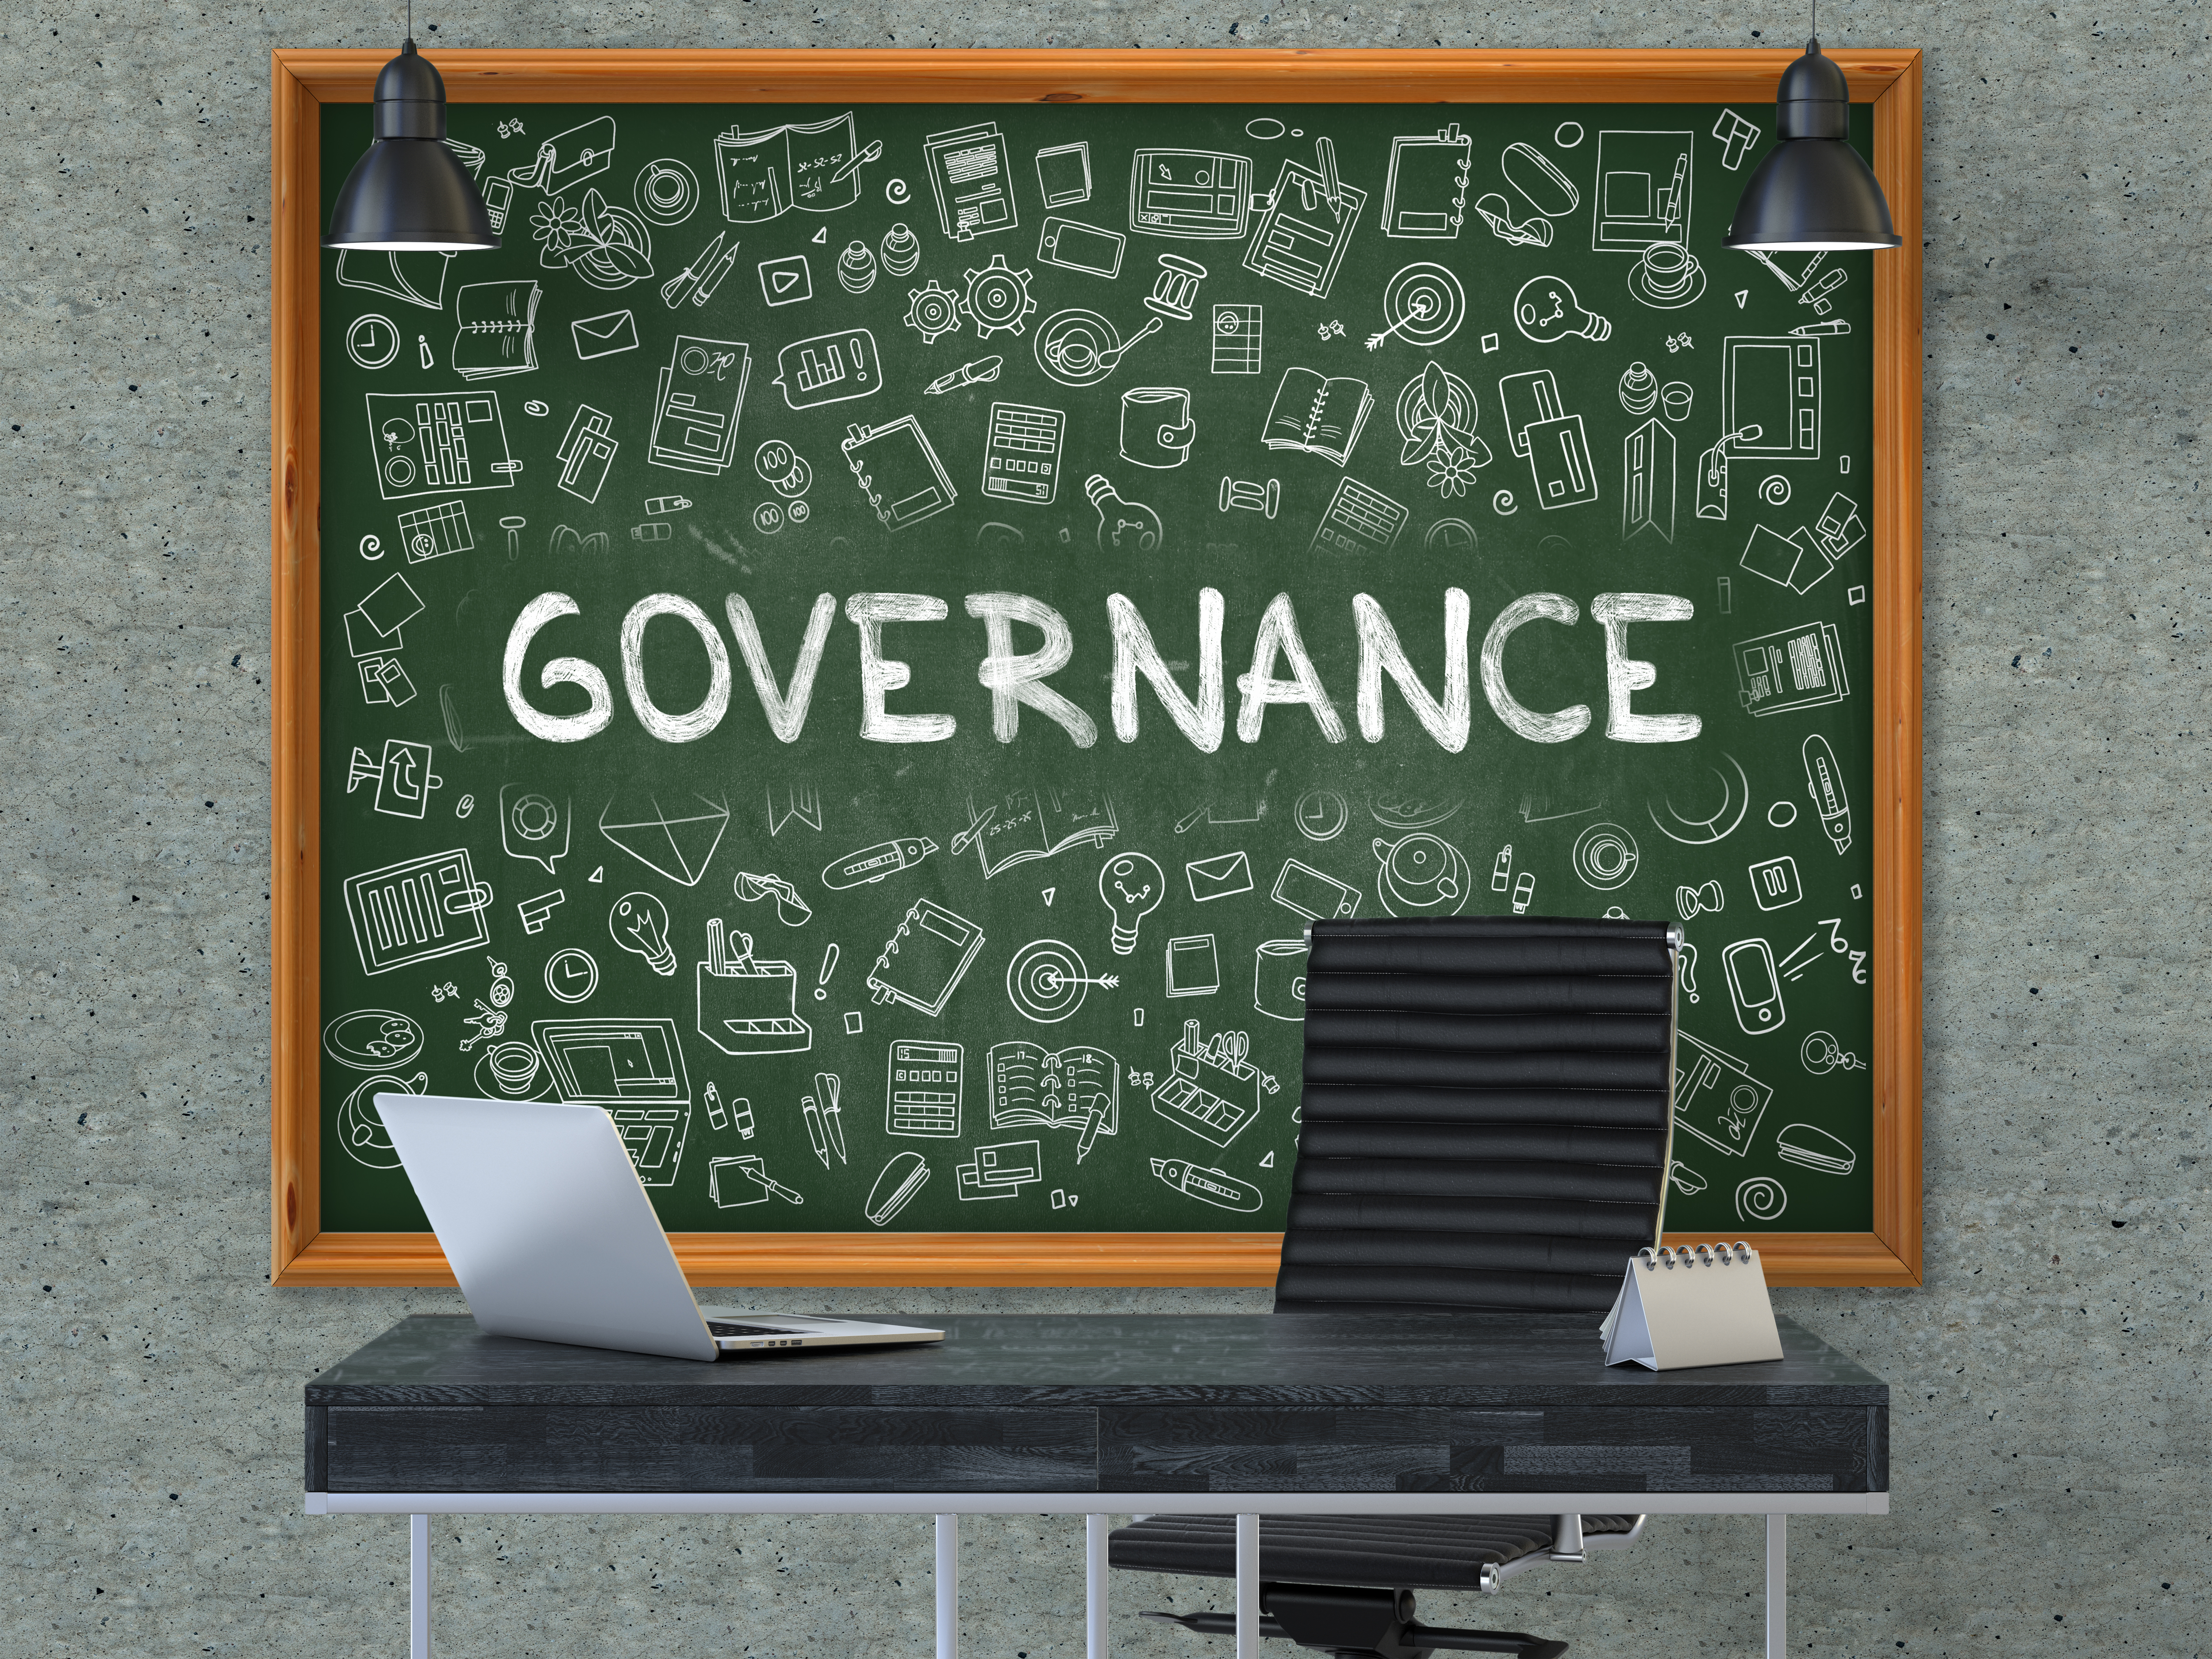 IoT and Embedded Governance White Paper